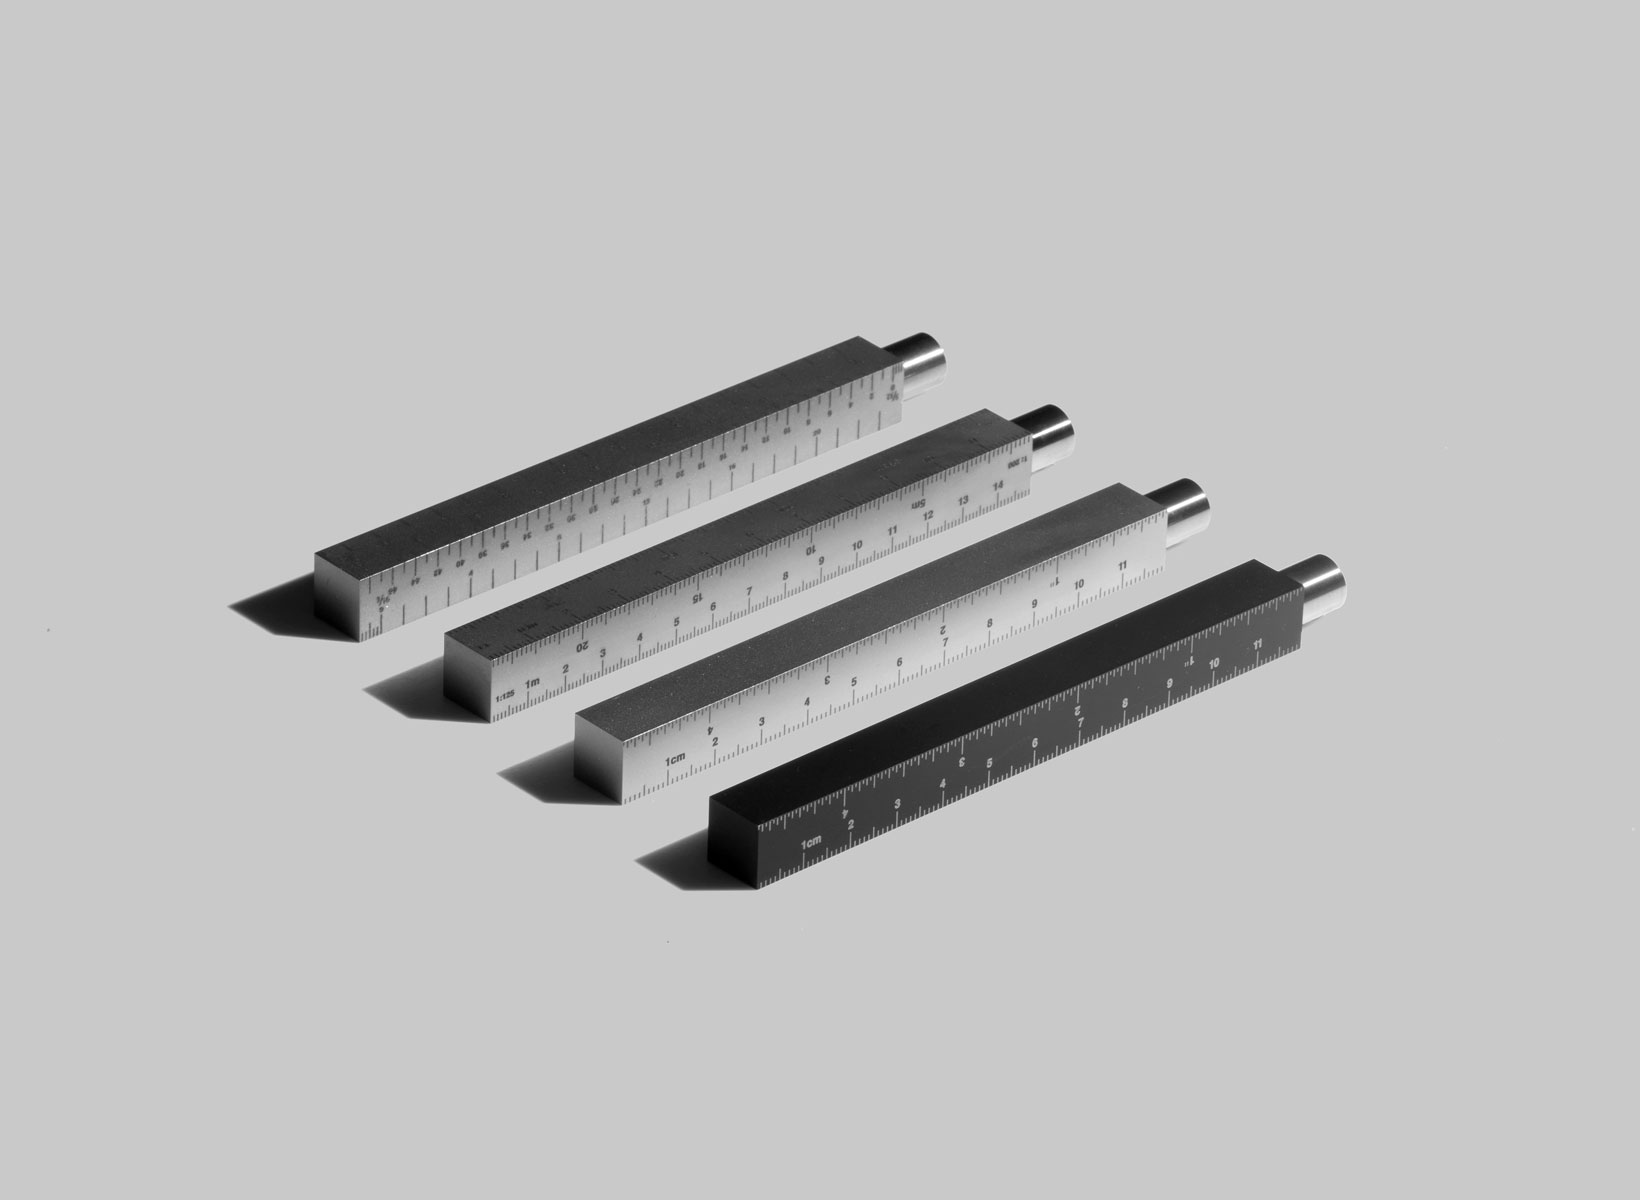 Four of the Type-A pen with ruler case laid on a grey background.